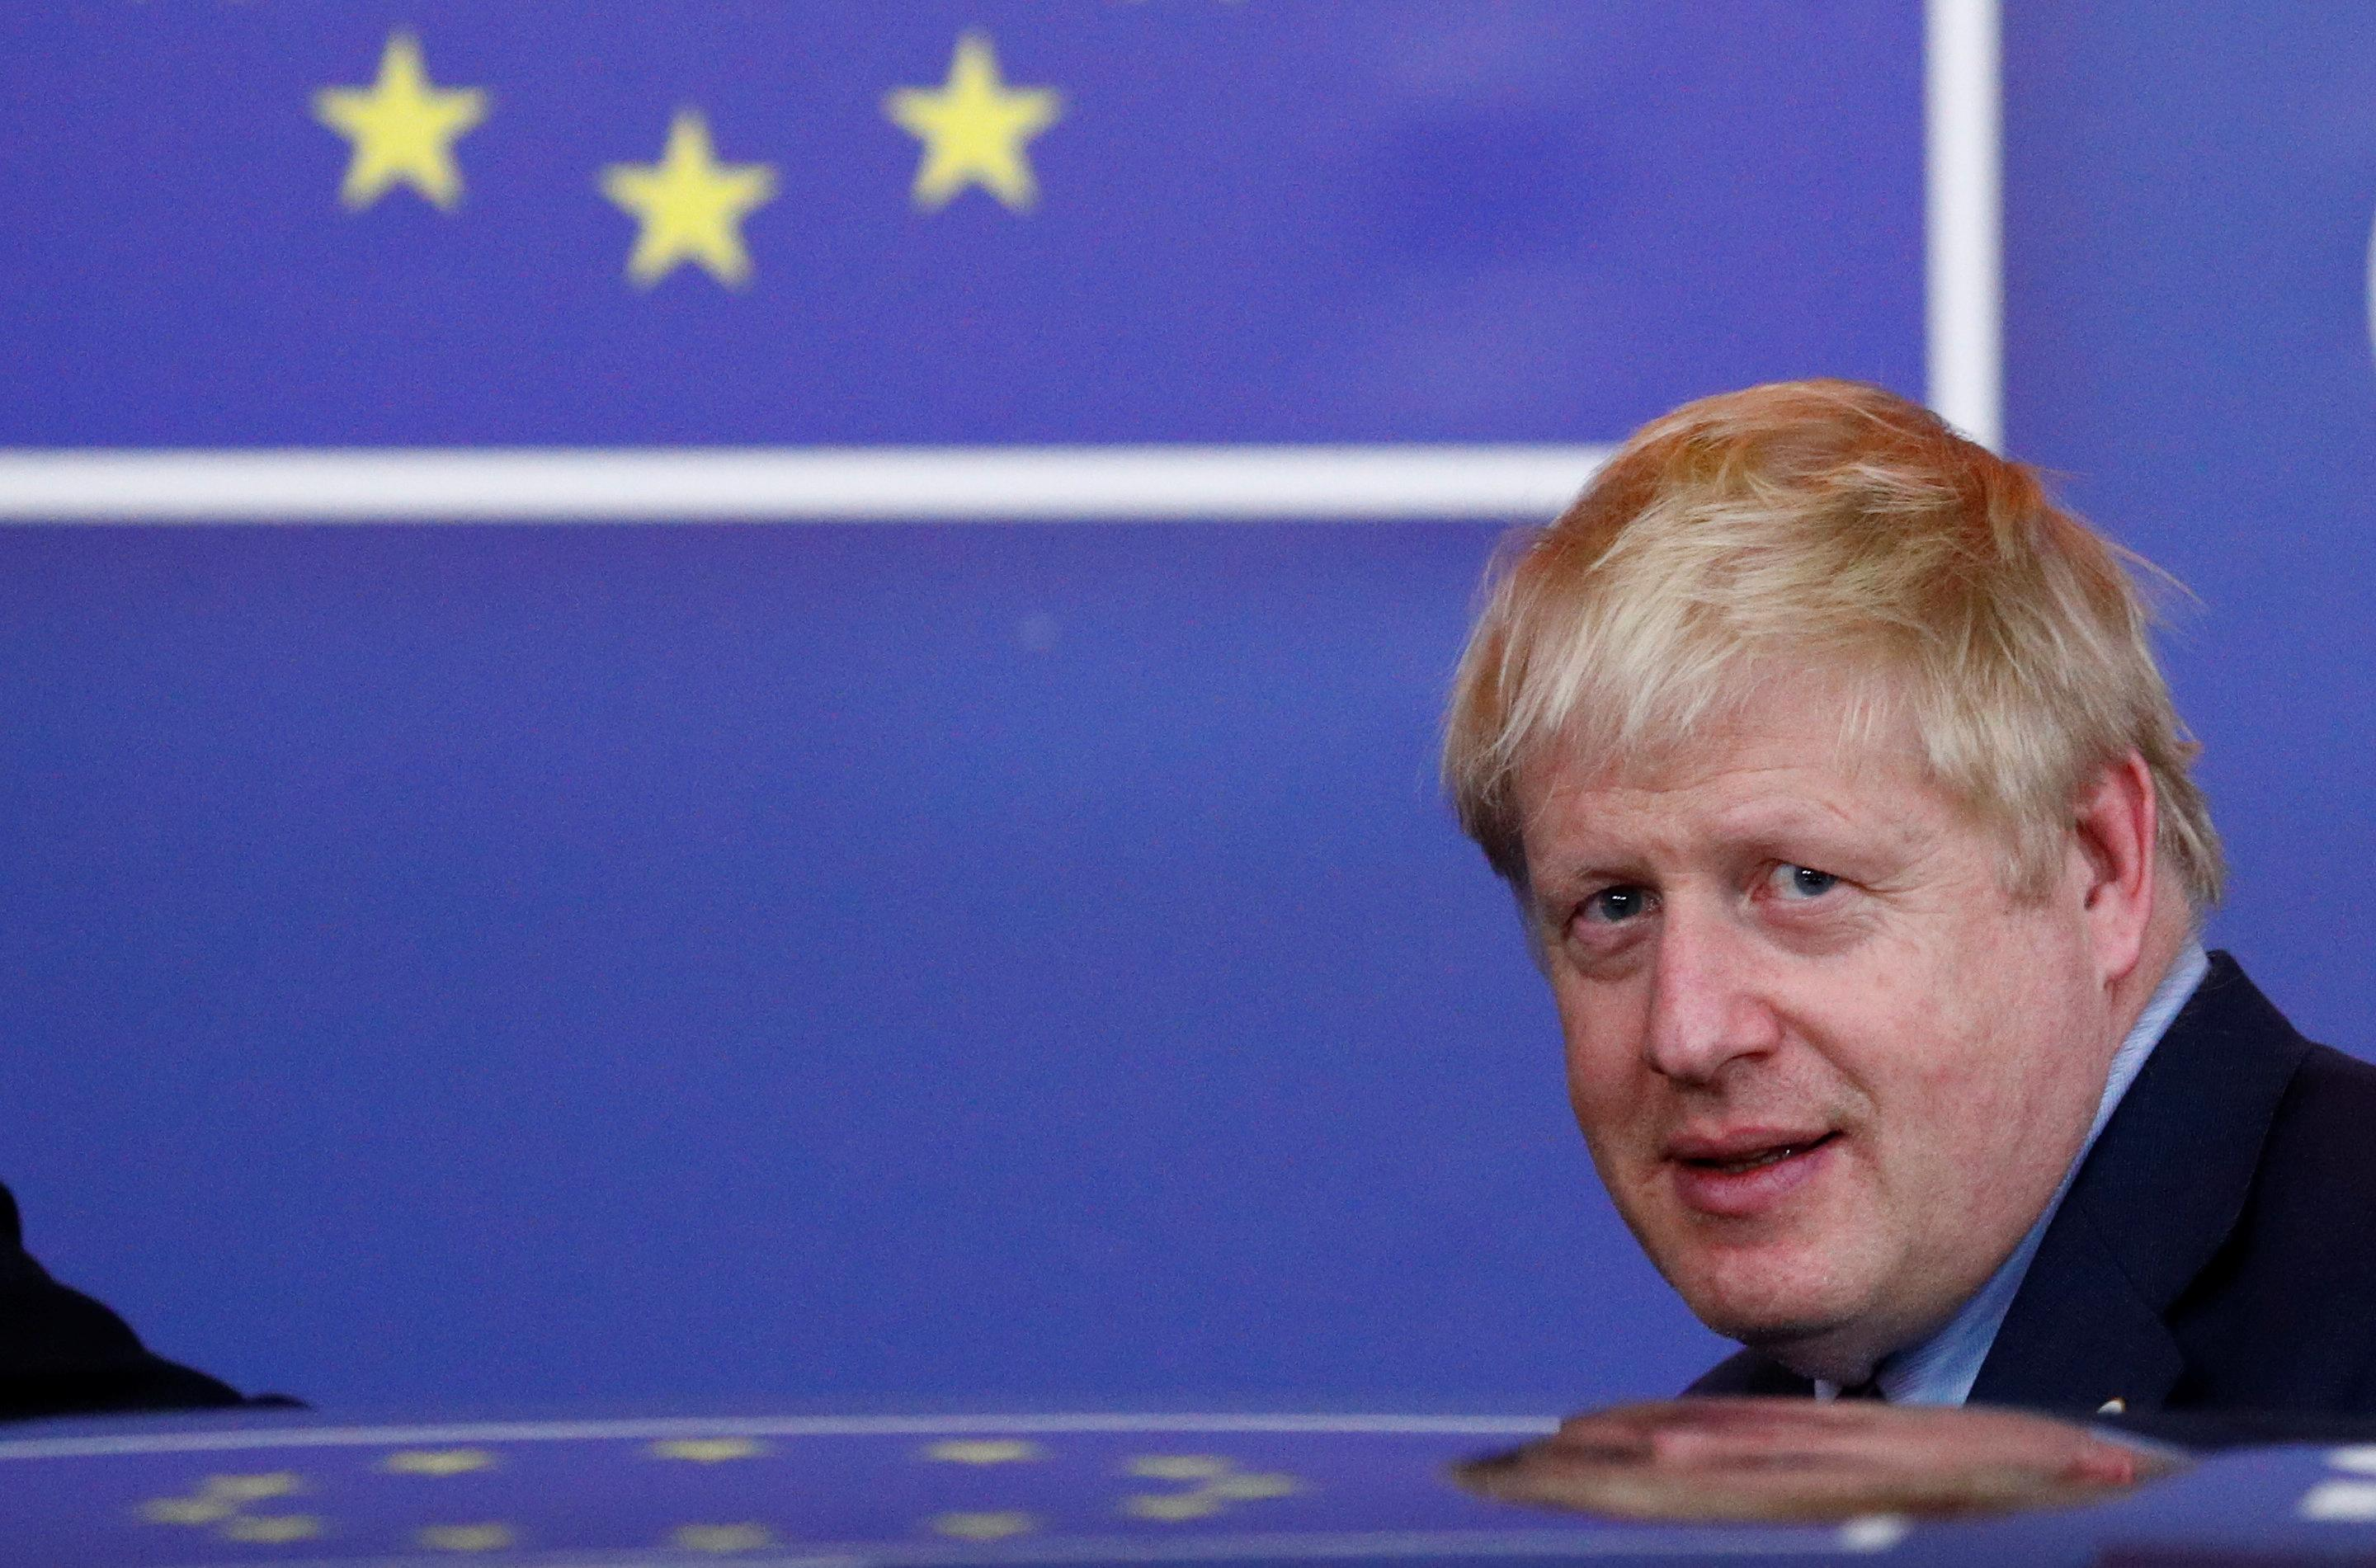 Brexit on a knife edge as PM Johnson stakes all on 'Super Saturday'...